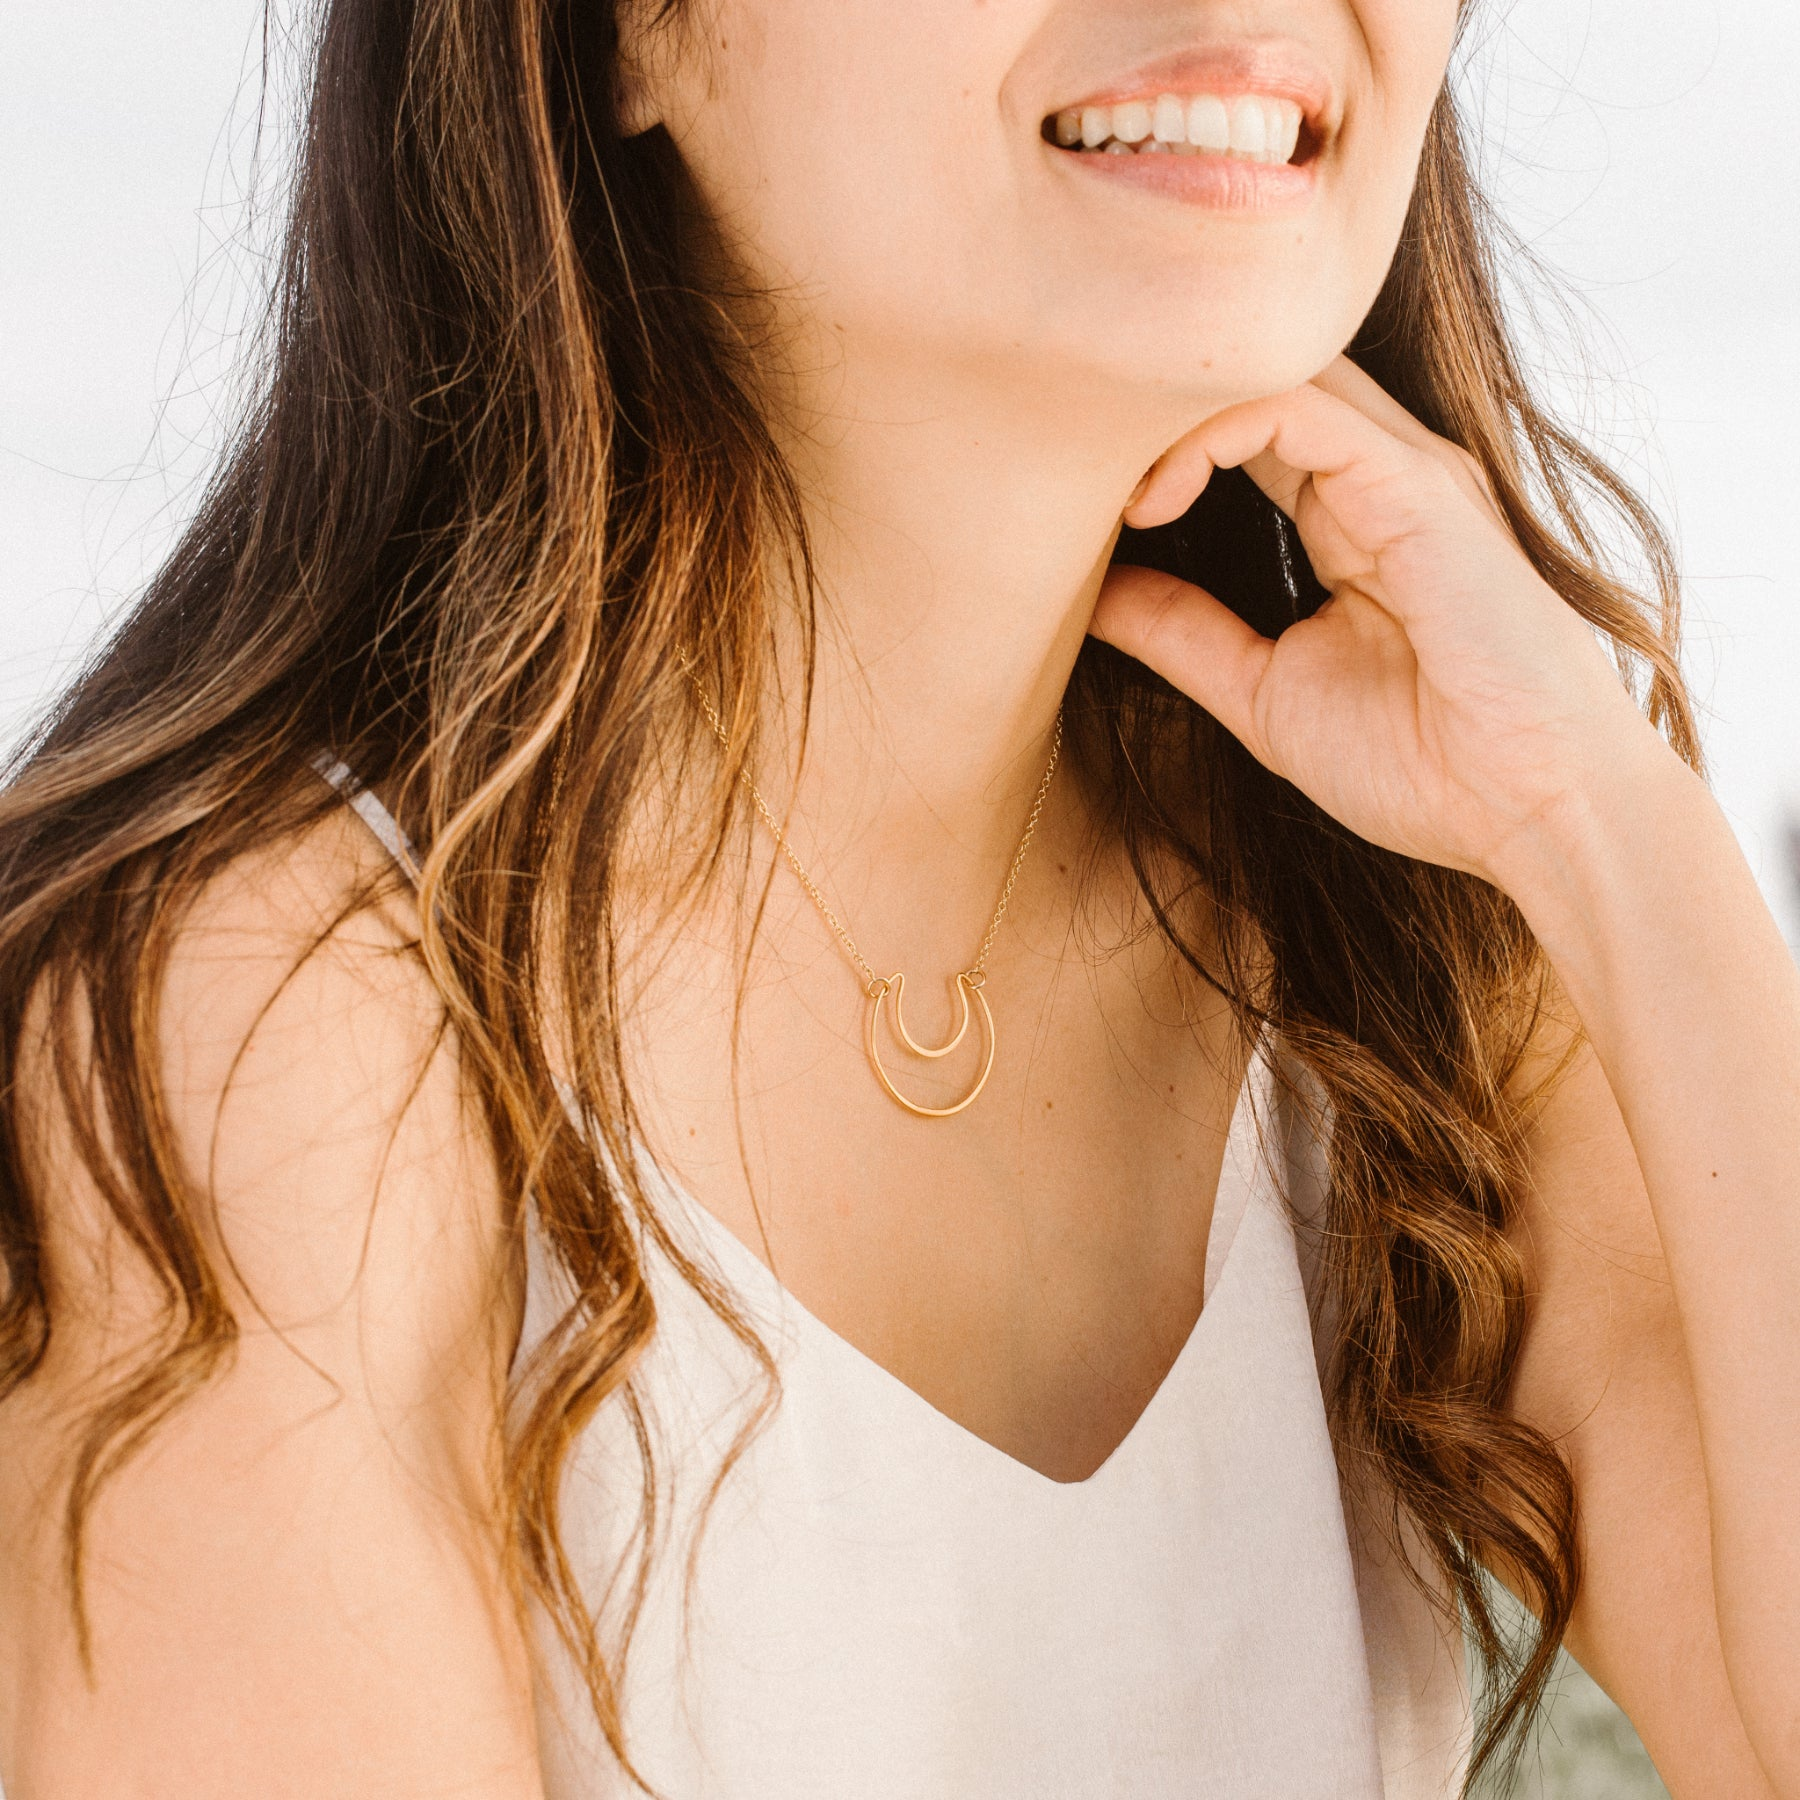 Woman in White Shirt Smiling and Wearing Gold Crescent Moon Pendant Necklace 'You Are Still Standing' Model Photo by Asha Blooms